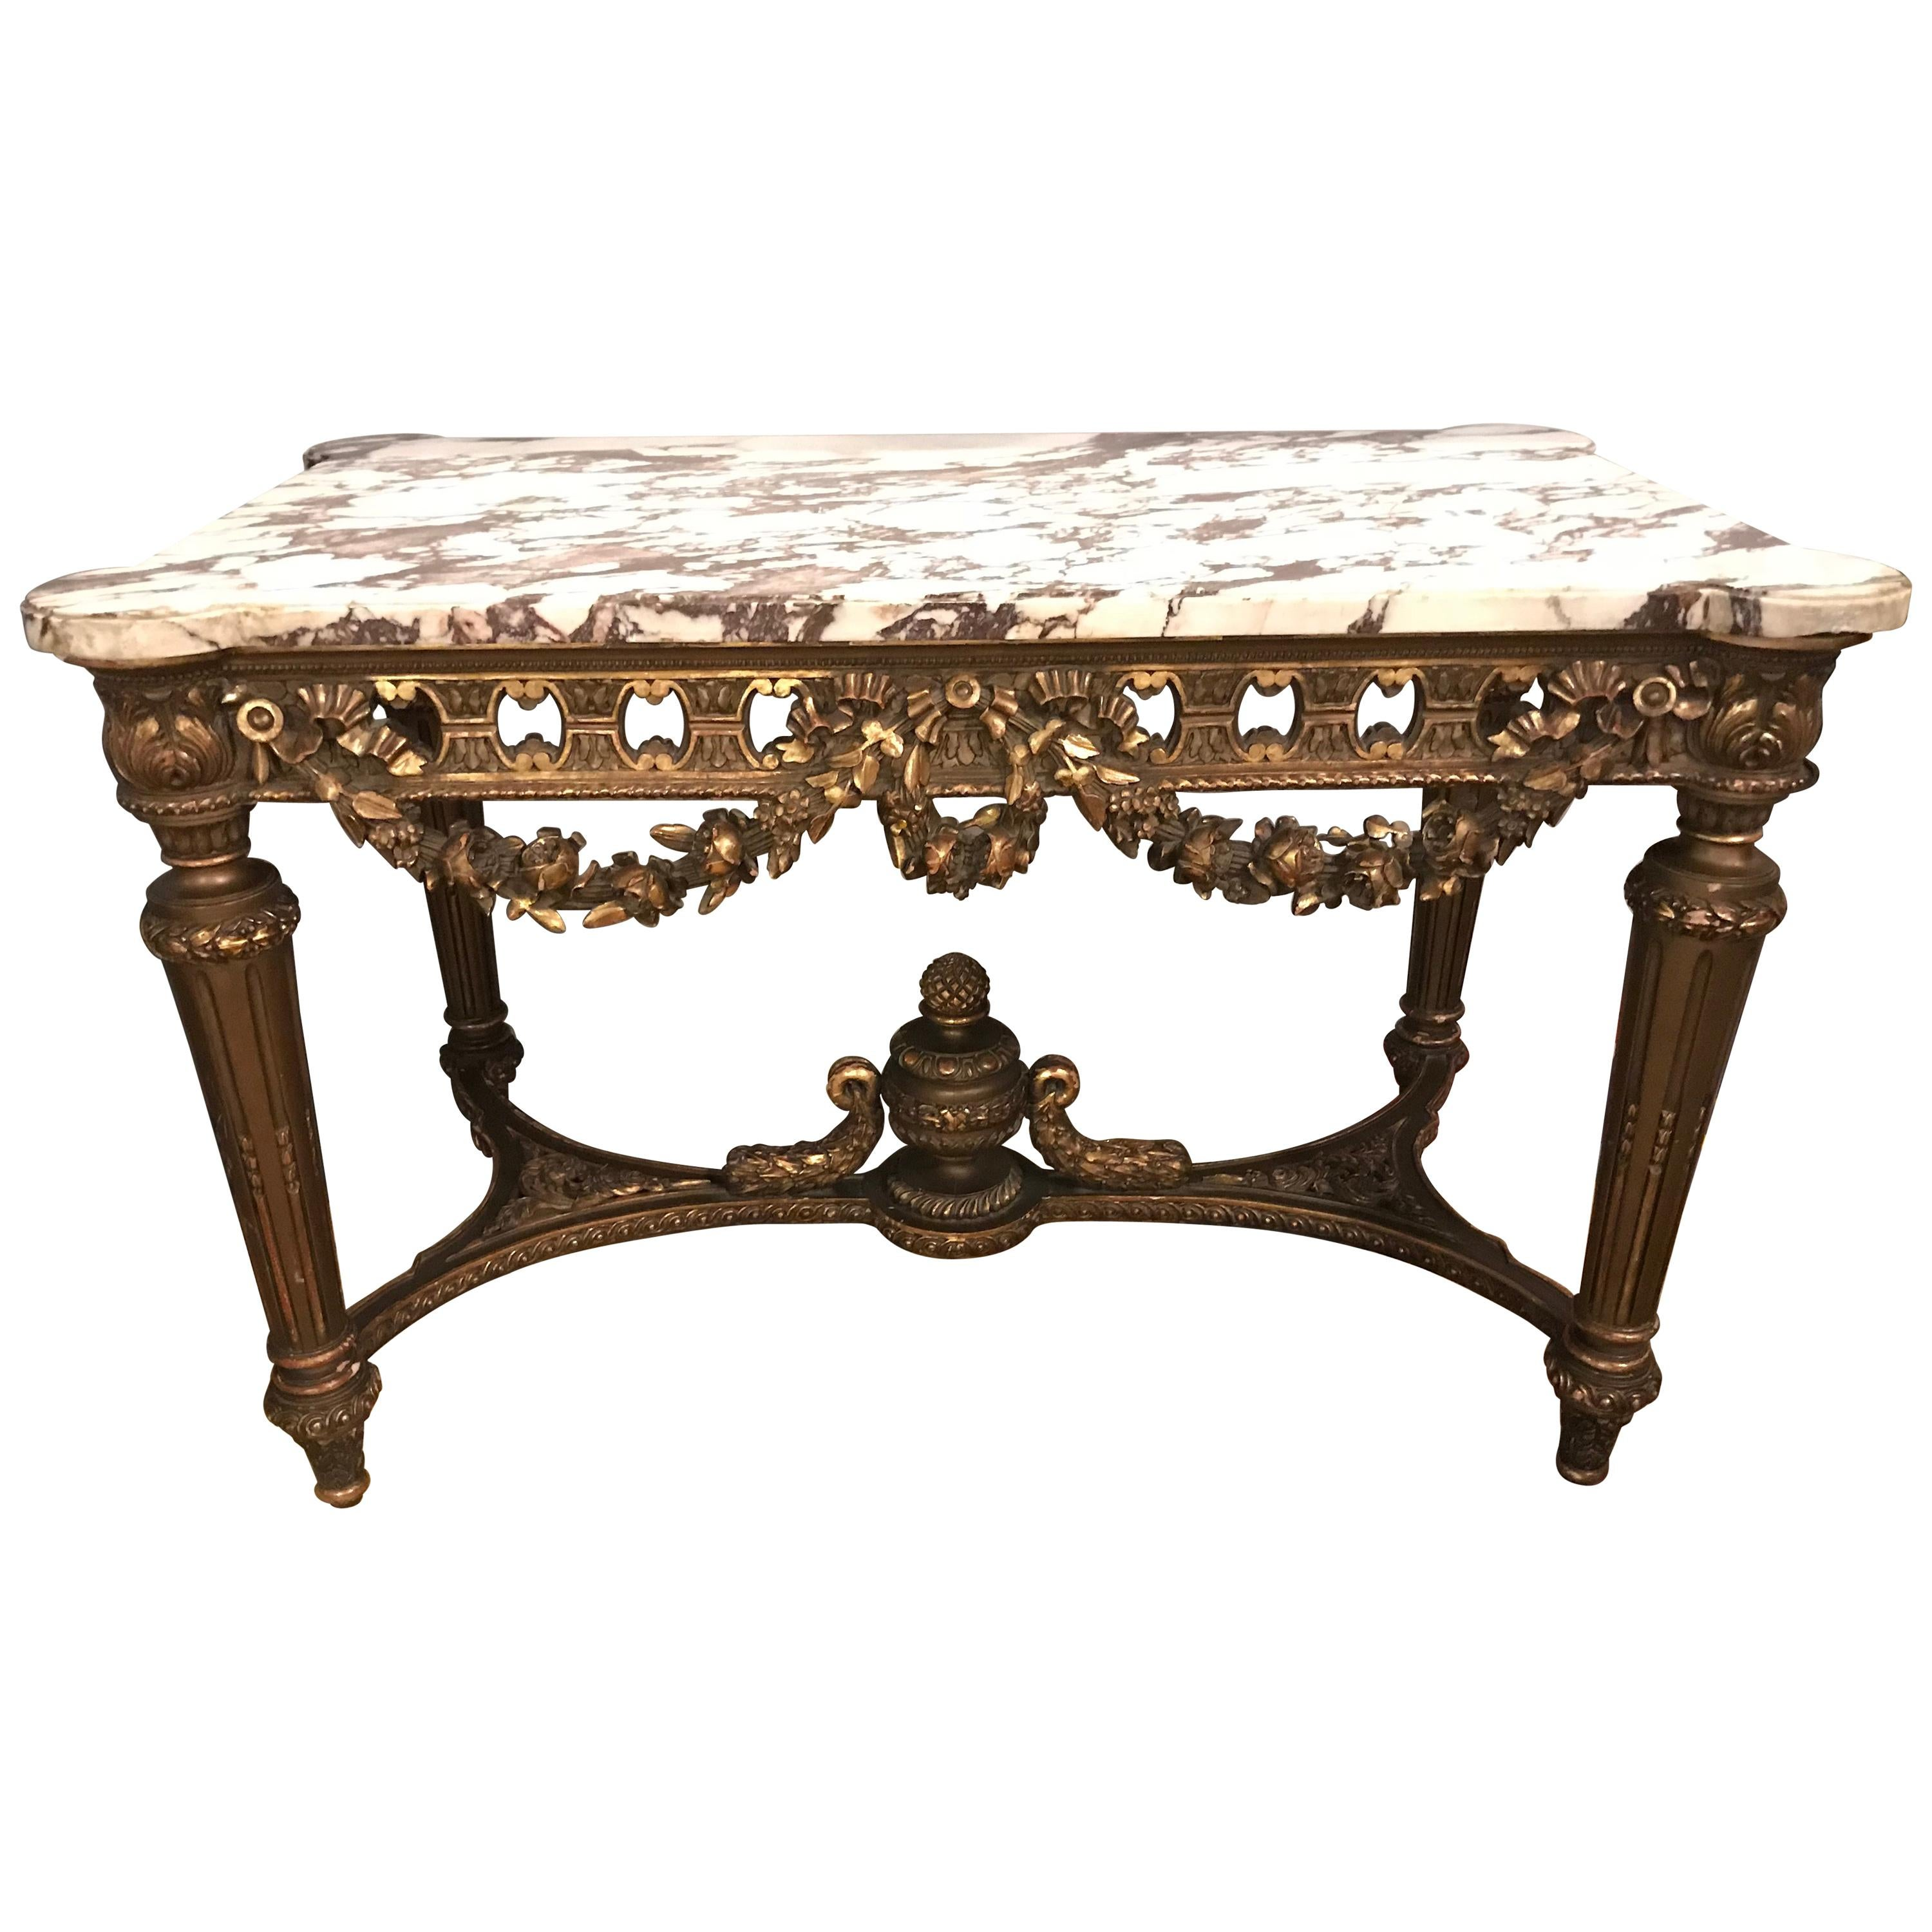 French Louis XVI Style 19th Century Giltwood Marble-Top Centre Table